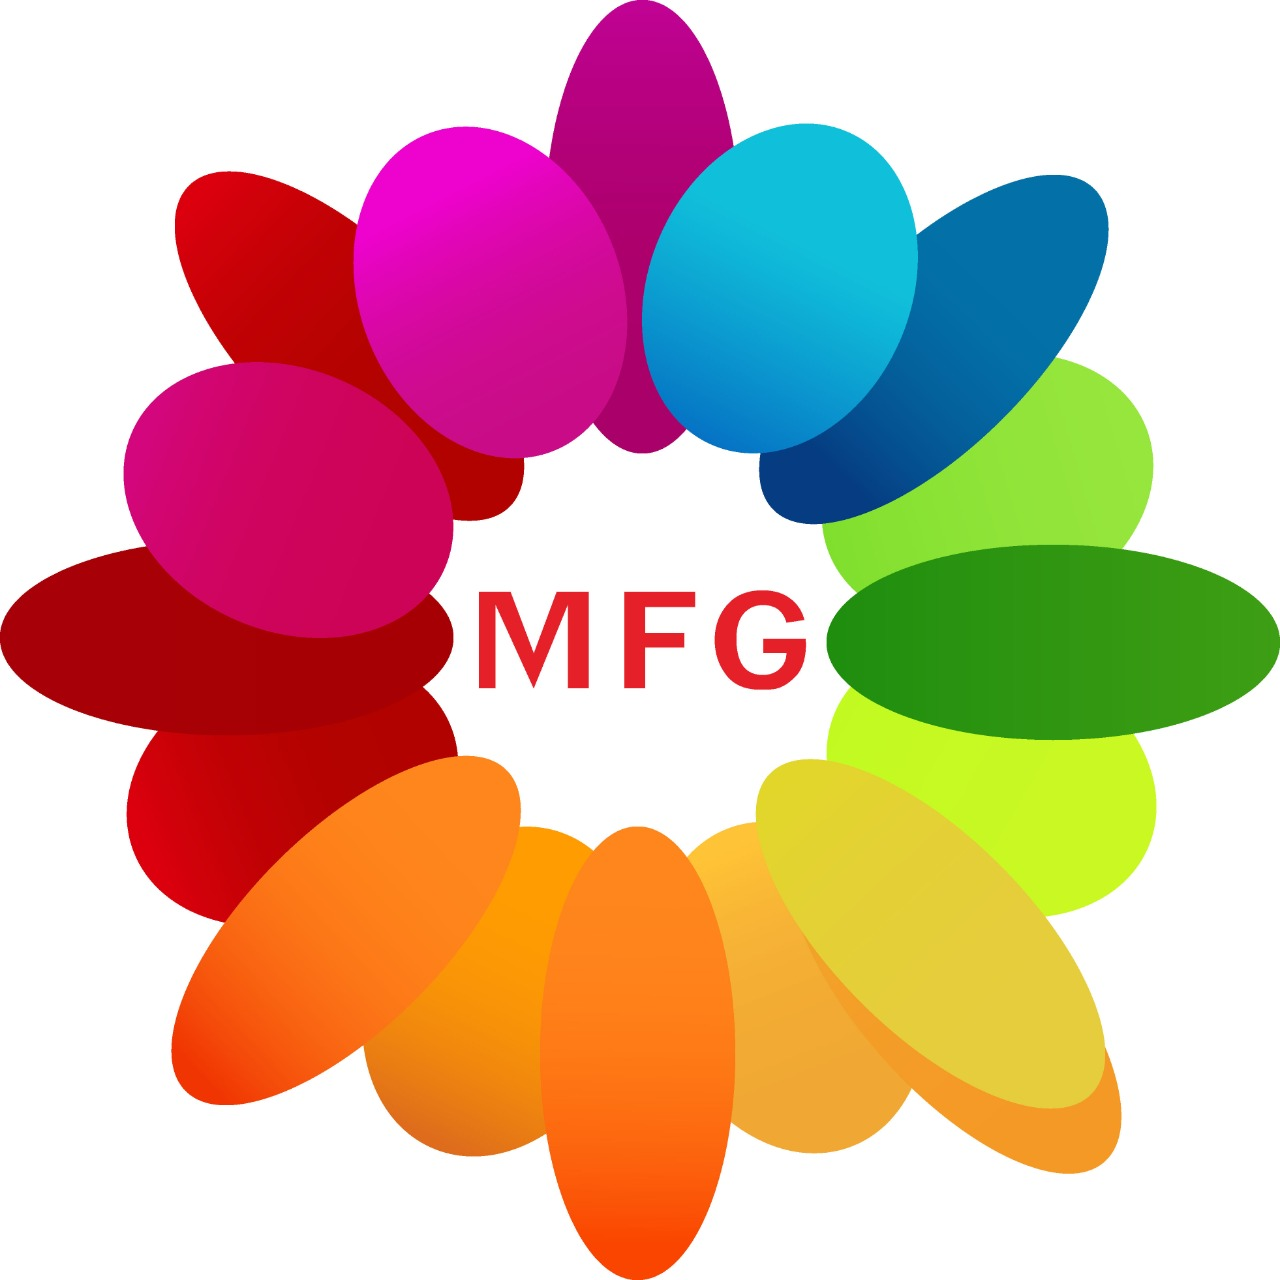 Bunch of 15 red carnations with box of assorted dryfruits